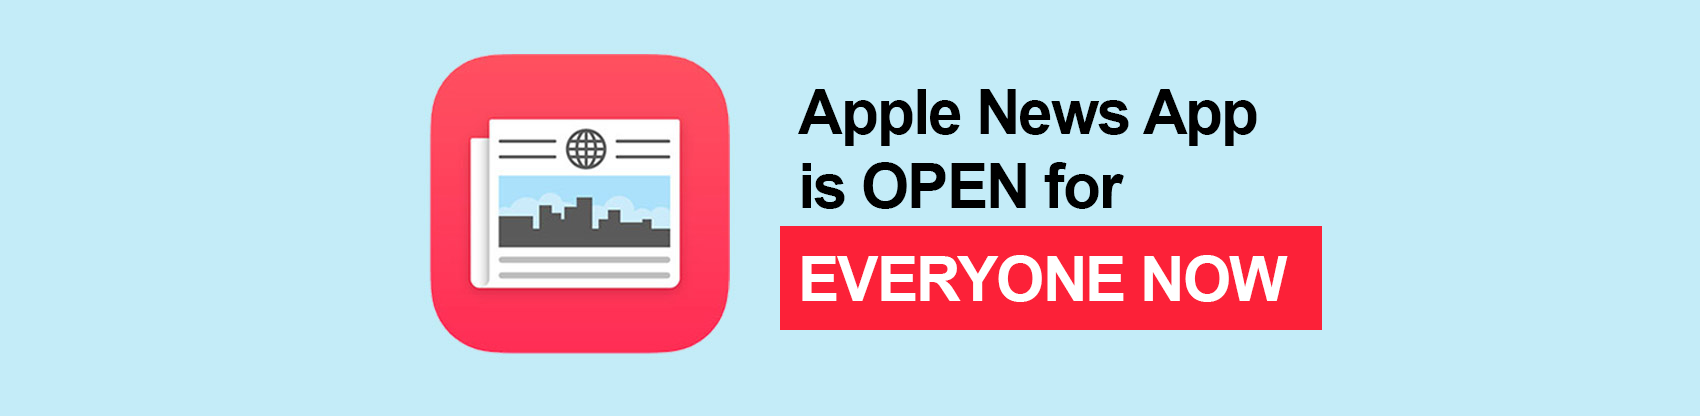 Apple iOS News app is open to all: How this will help Publishers/Content marketers?